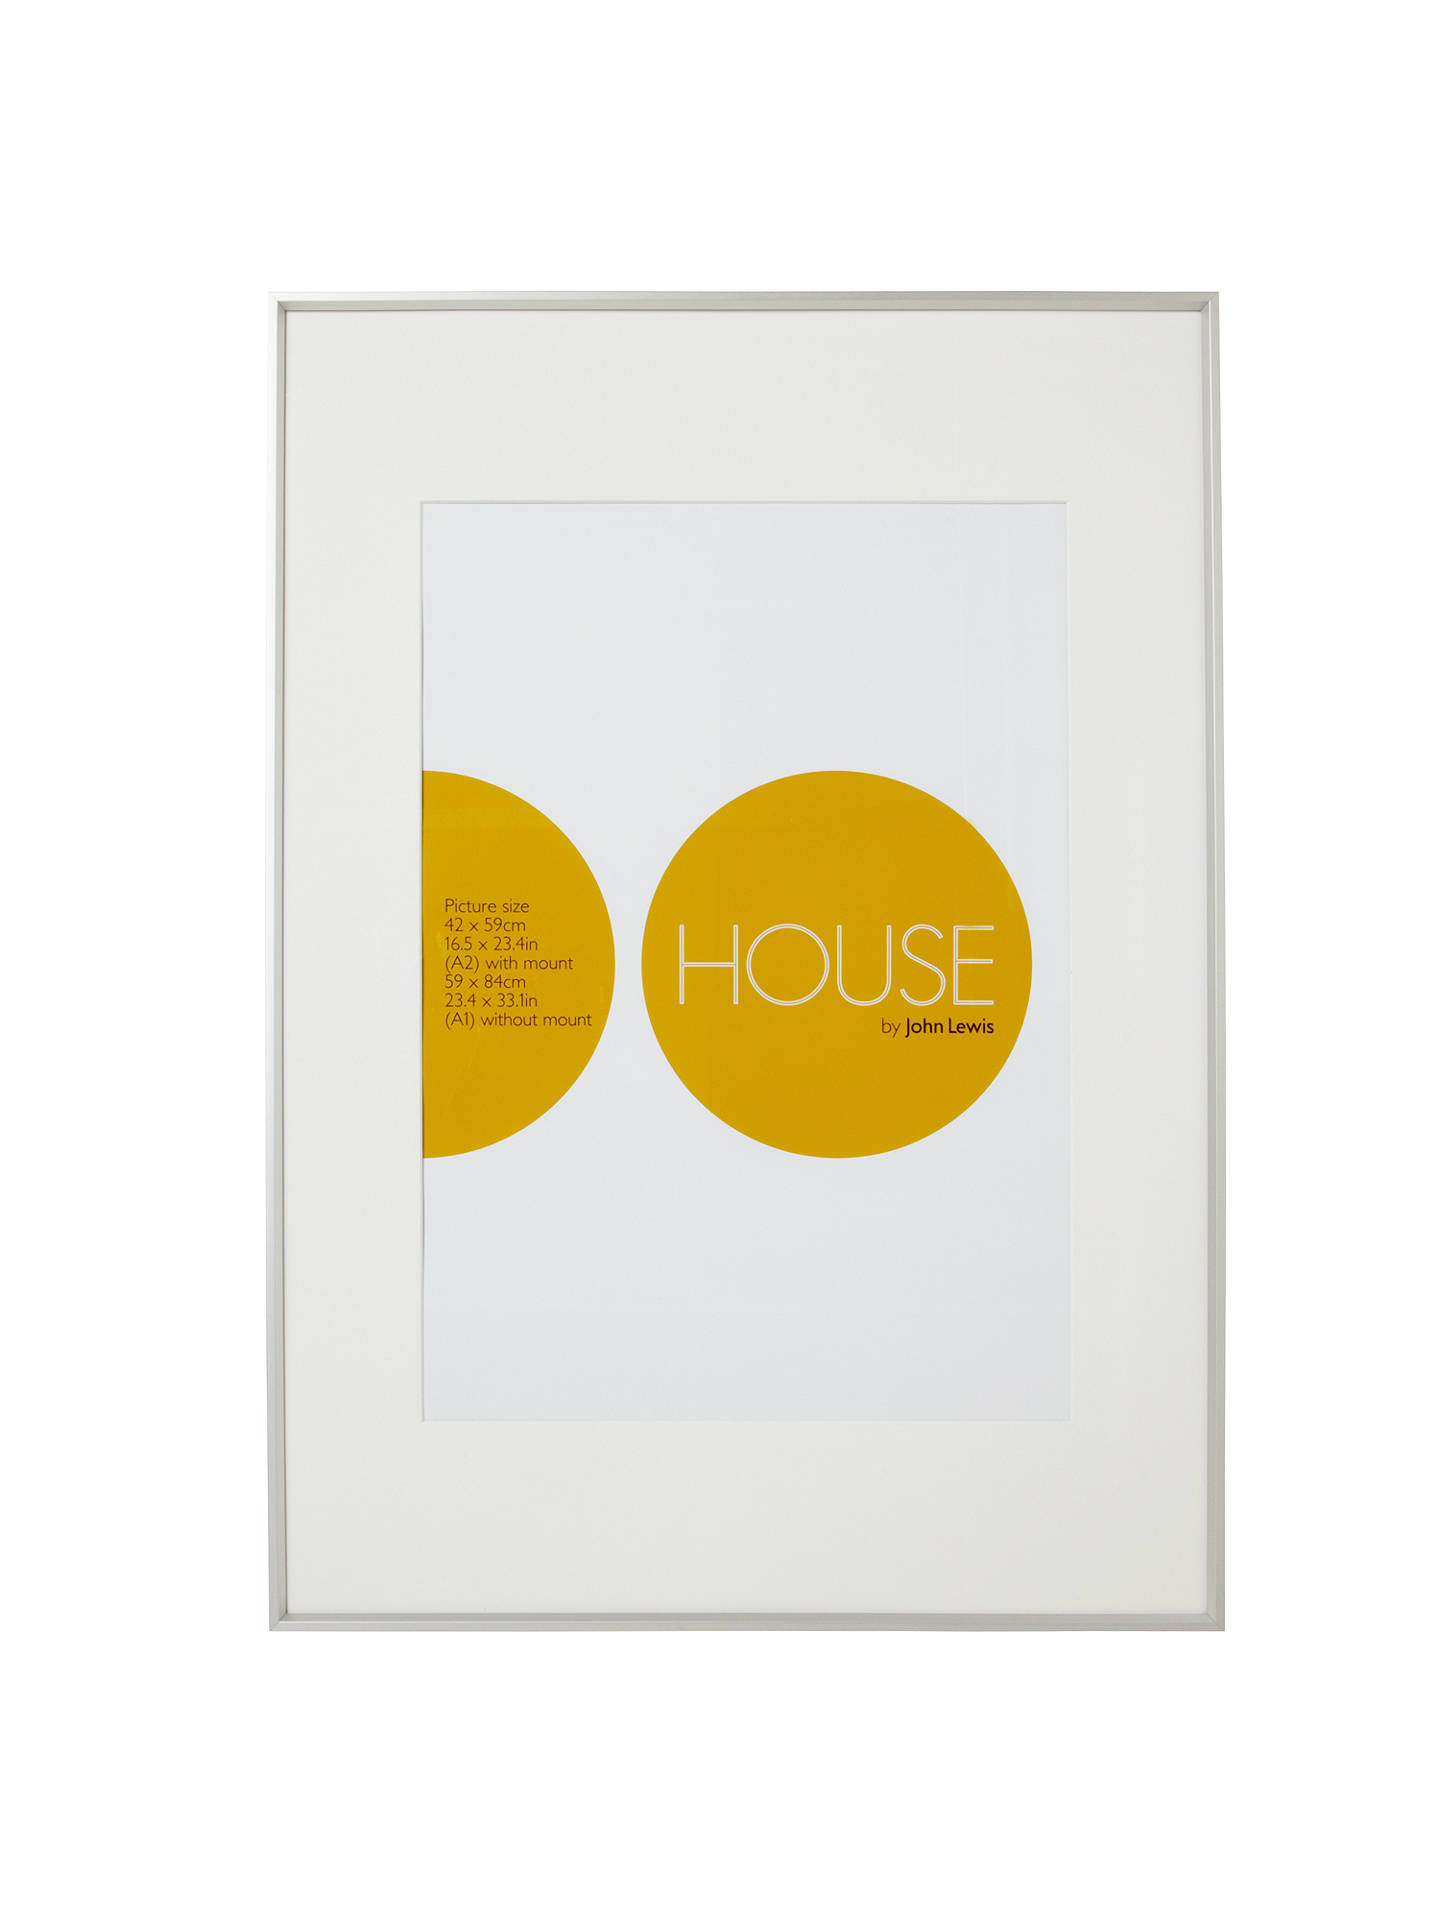 Buy House by John Lewis Aluminium Photo Frame, A1 with A2 Mount, Silver Online at johnlewis.com